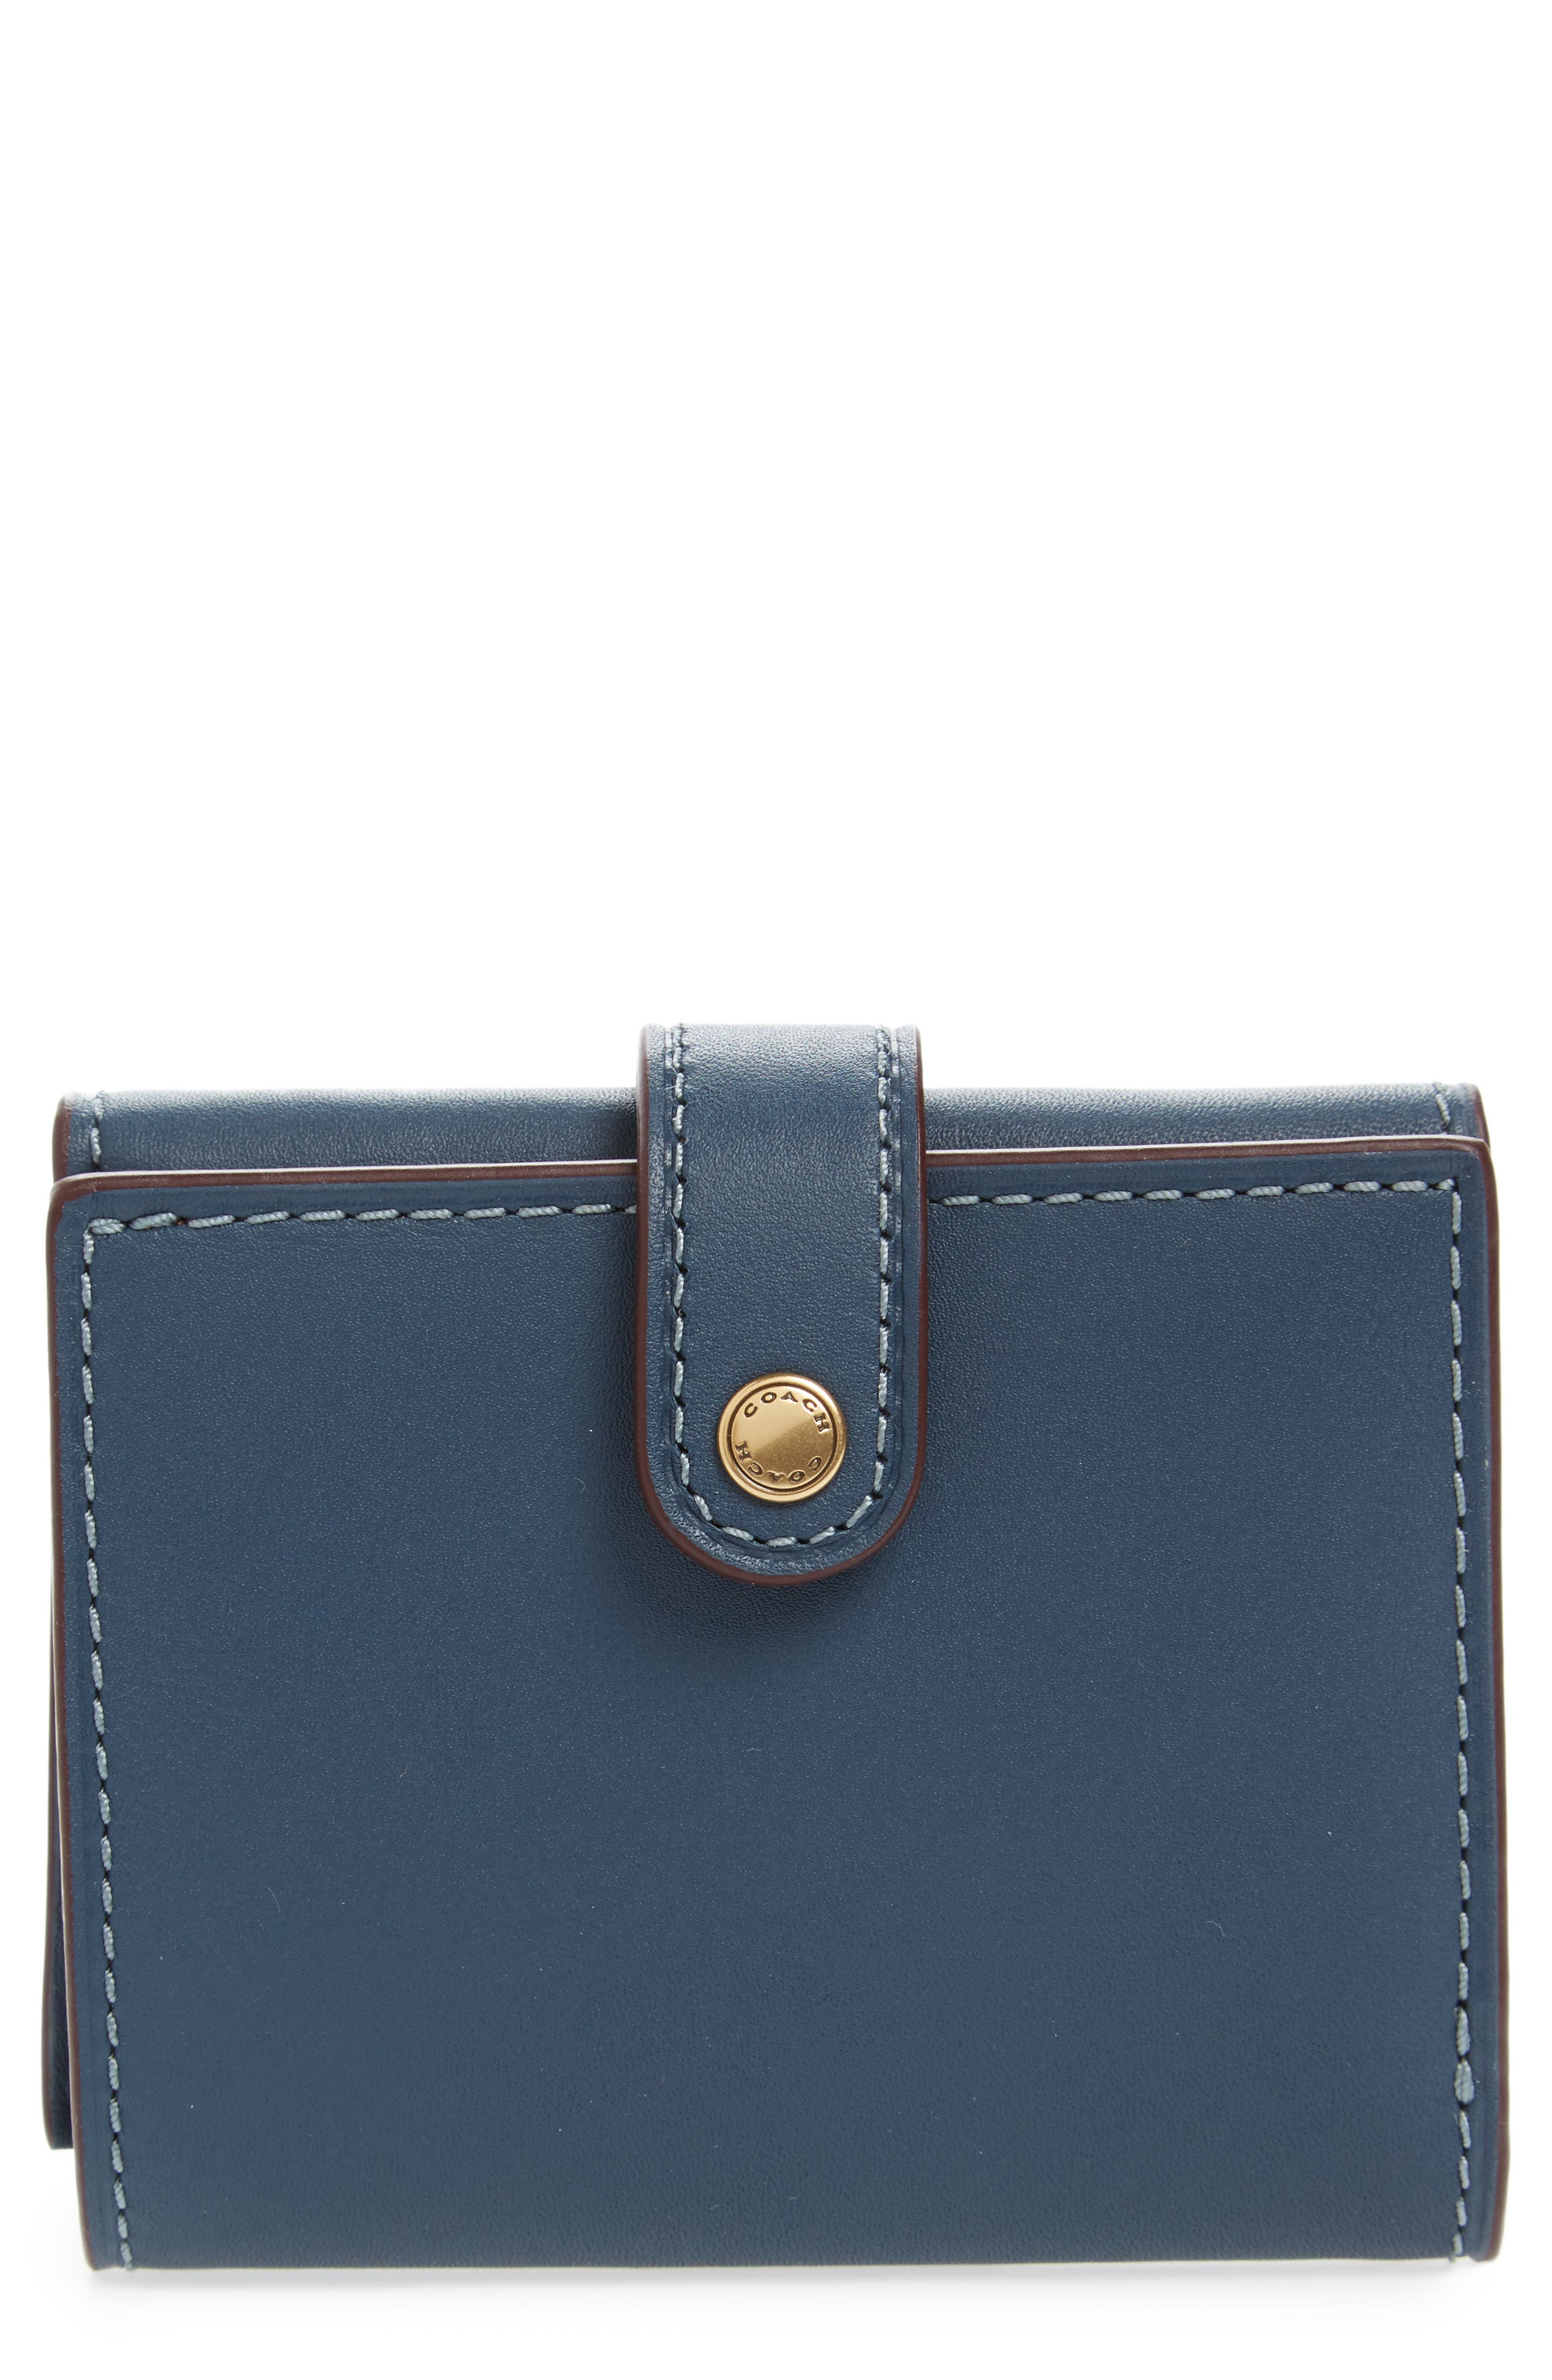 Main Image - COACH 1941 Small Leather Trifold Wallet